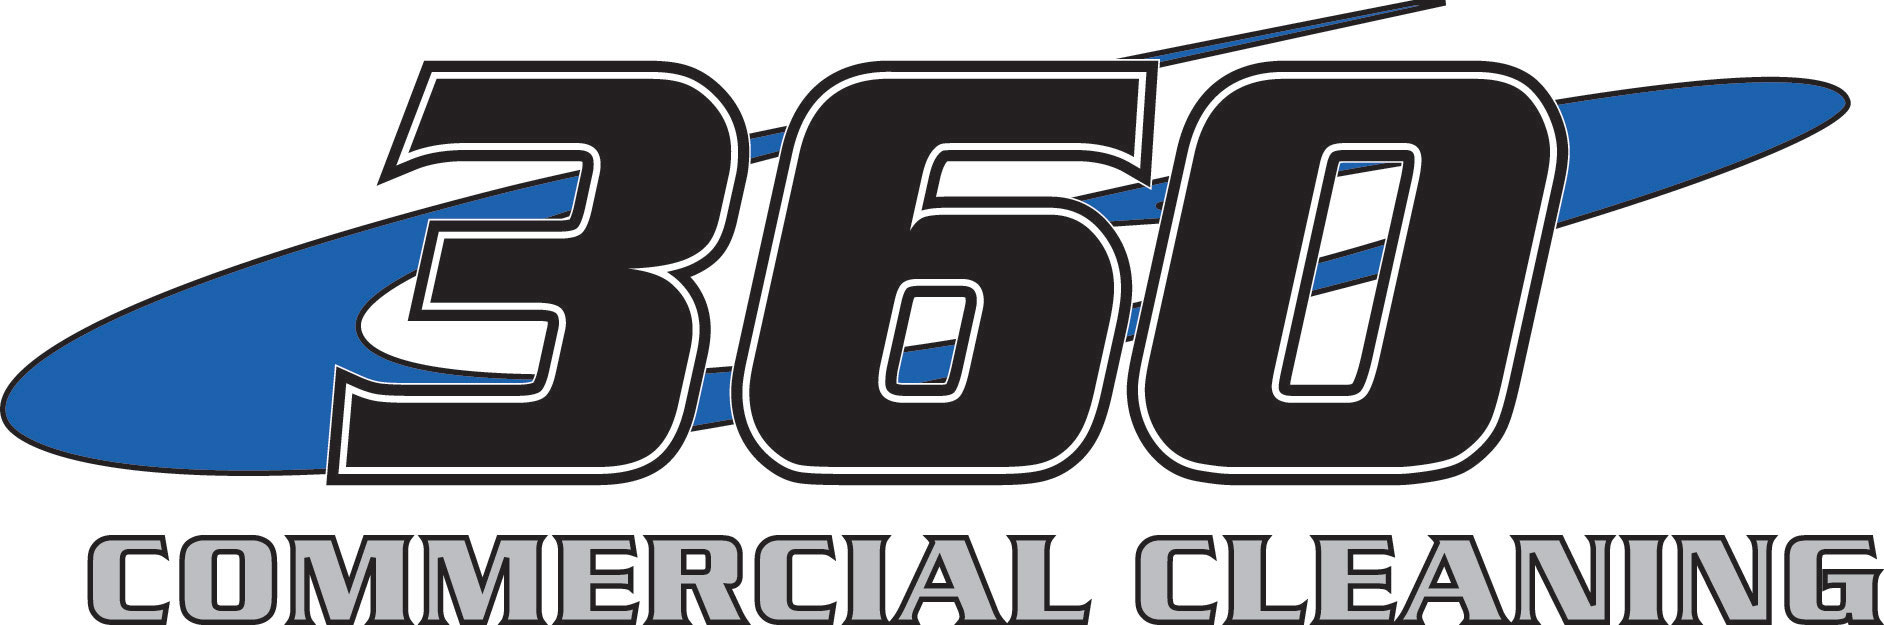 360 Commercial Cleaning | Overland Park, KS Hood Exhaust Cleaning, Hood  Cleaning, Commercial Power Washing, Restaurant Hood Cleaning Kansas City,  ...